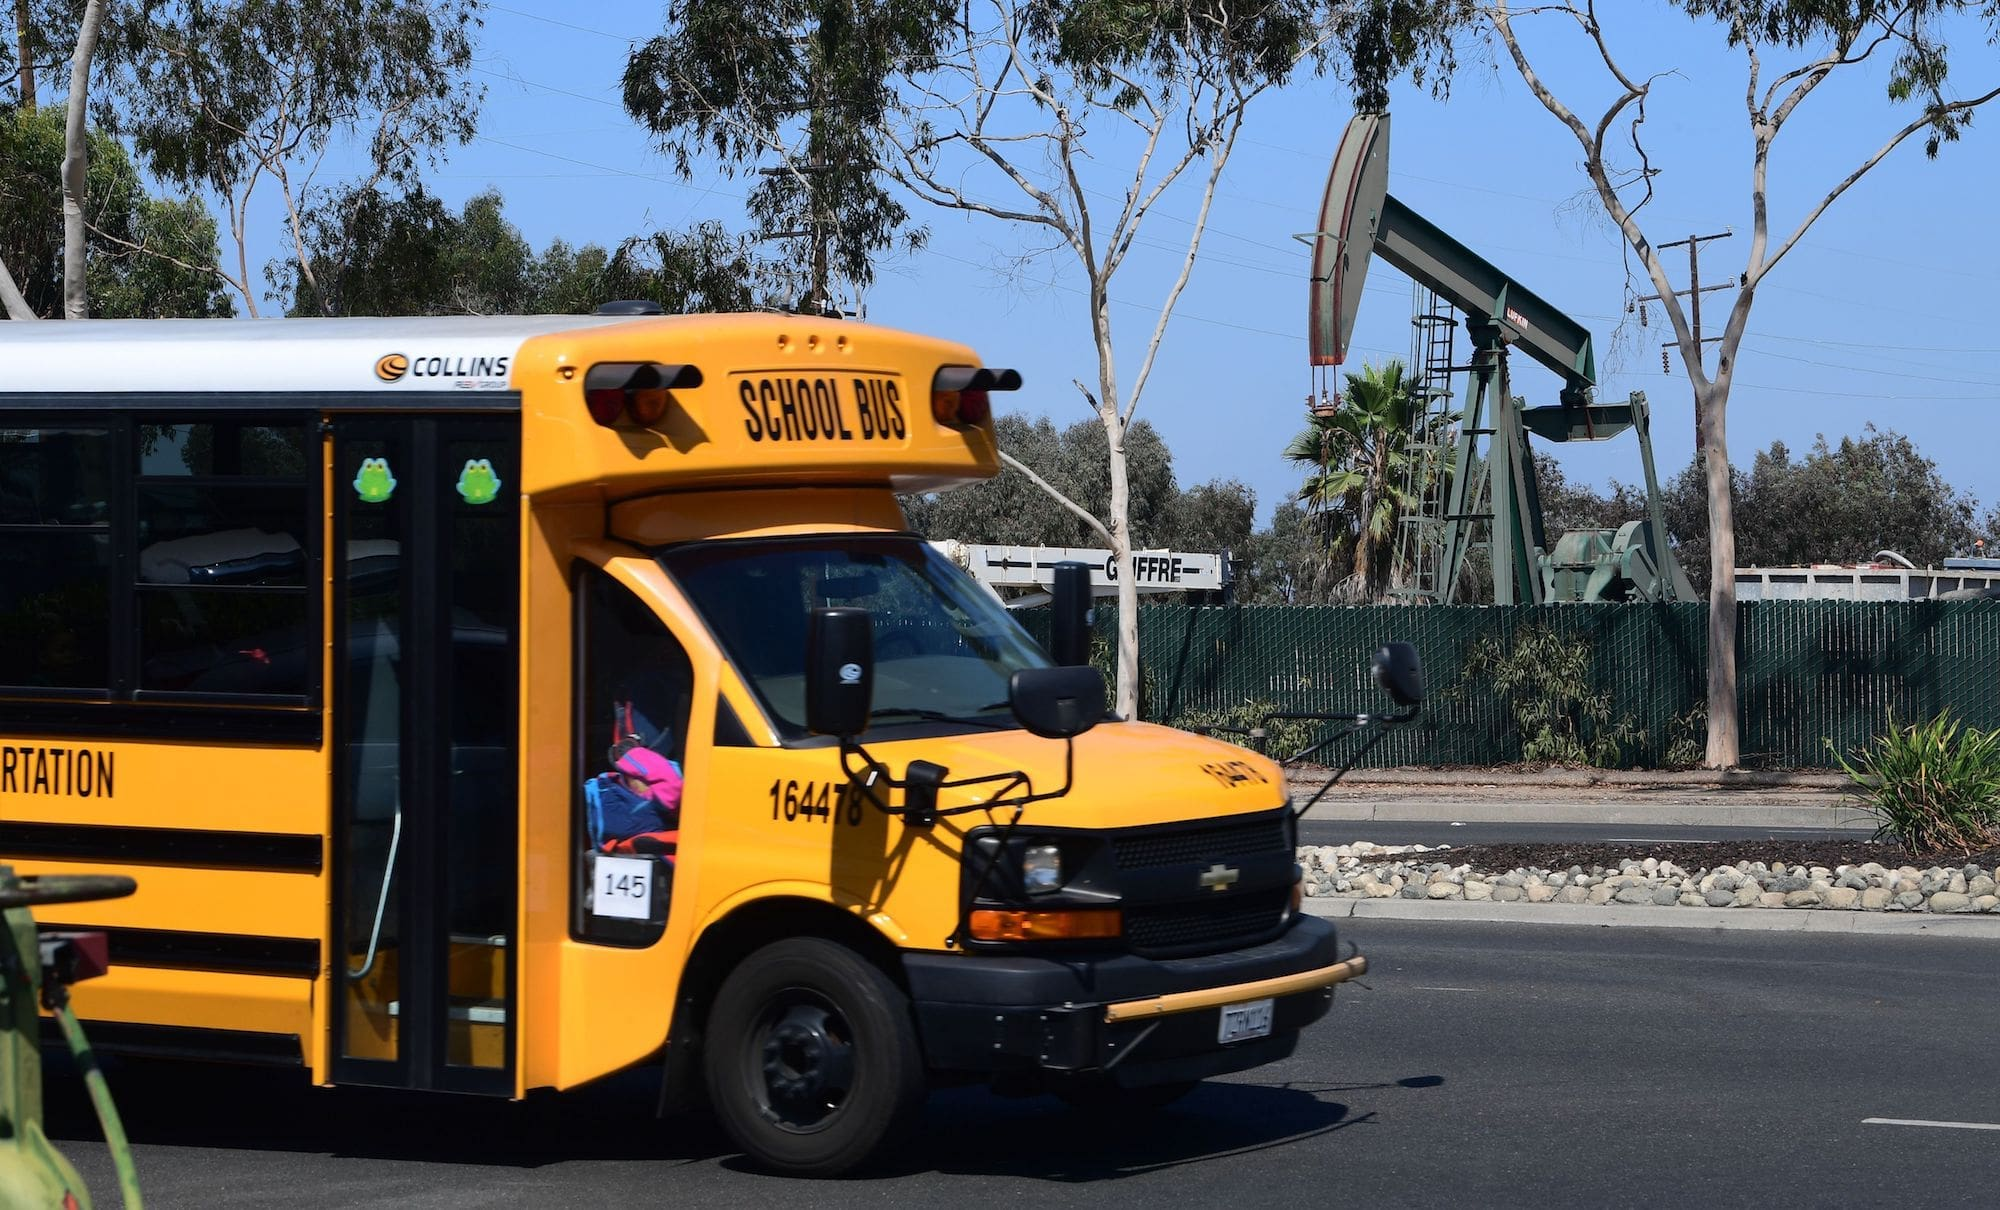 a yellow school bus parked on a street with an oil derrick visible nearby